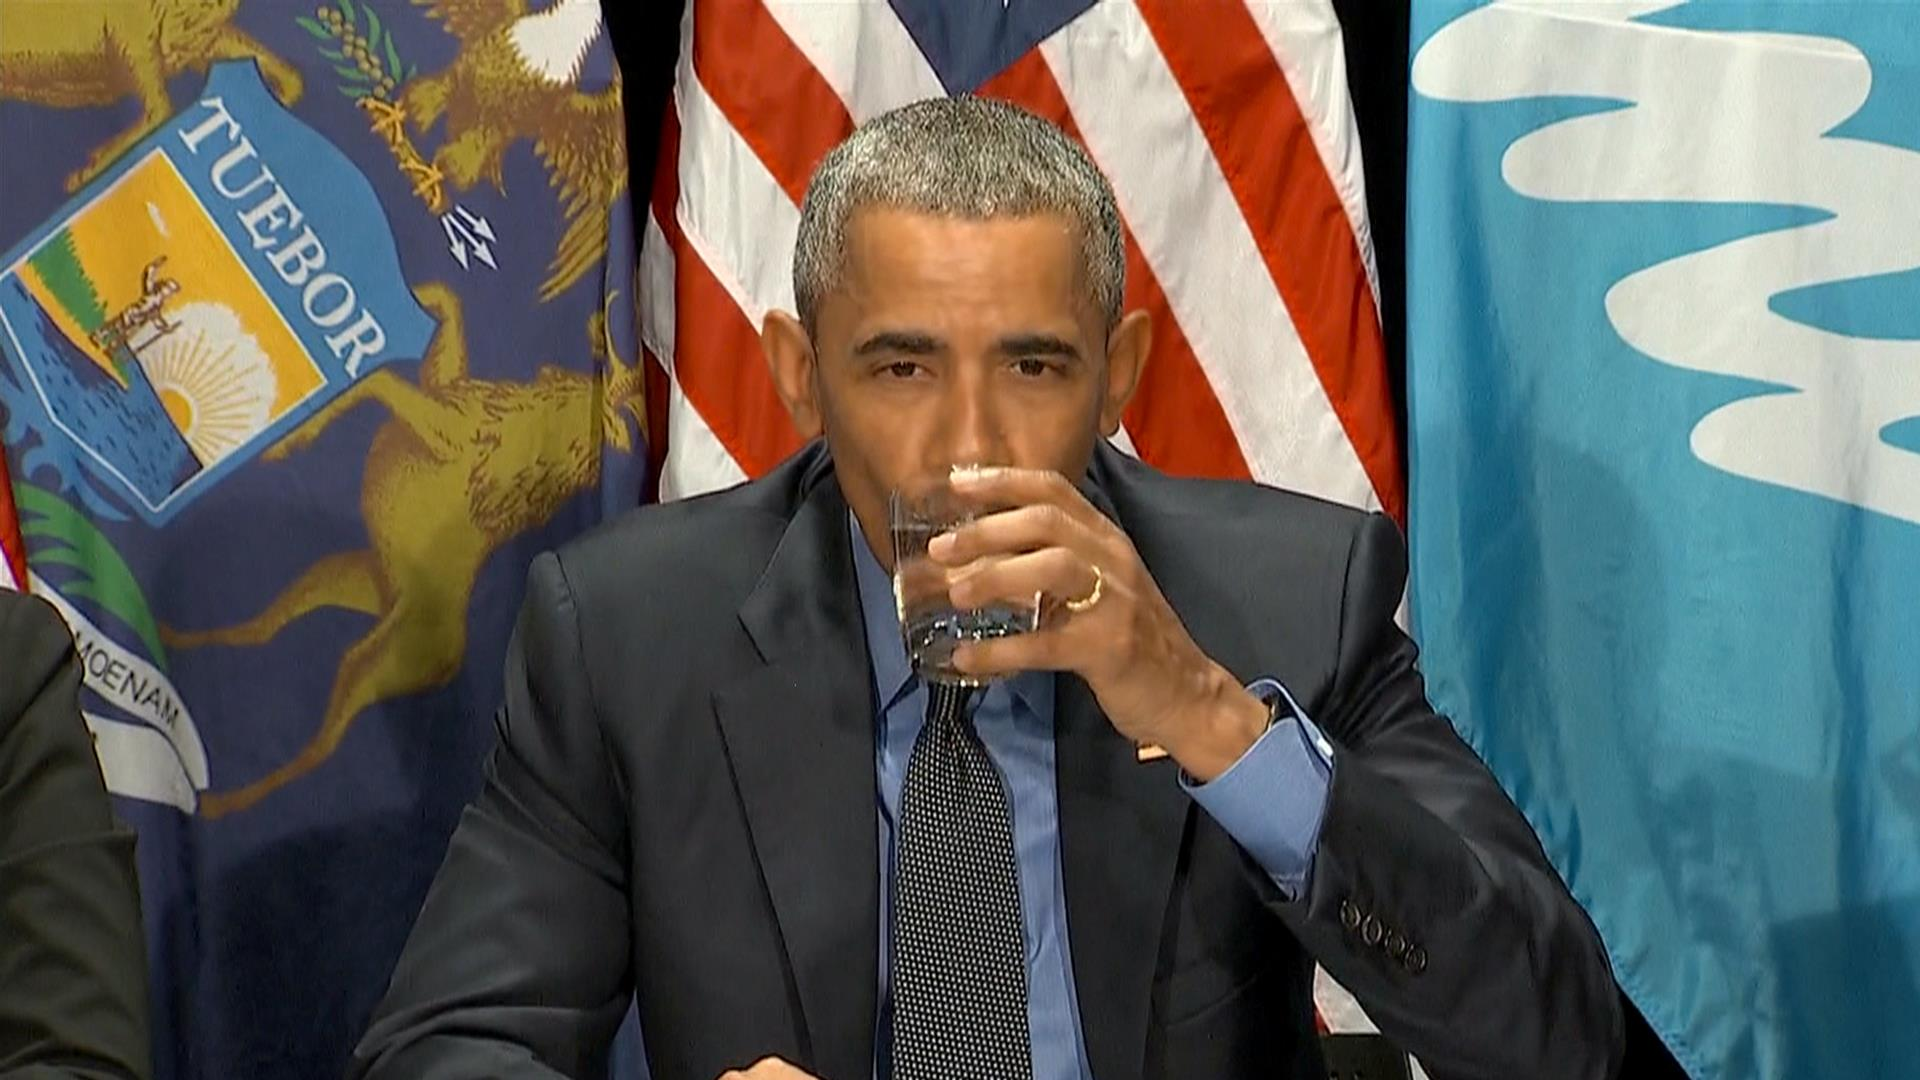 President Takes A Drink Of Water